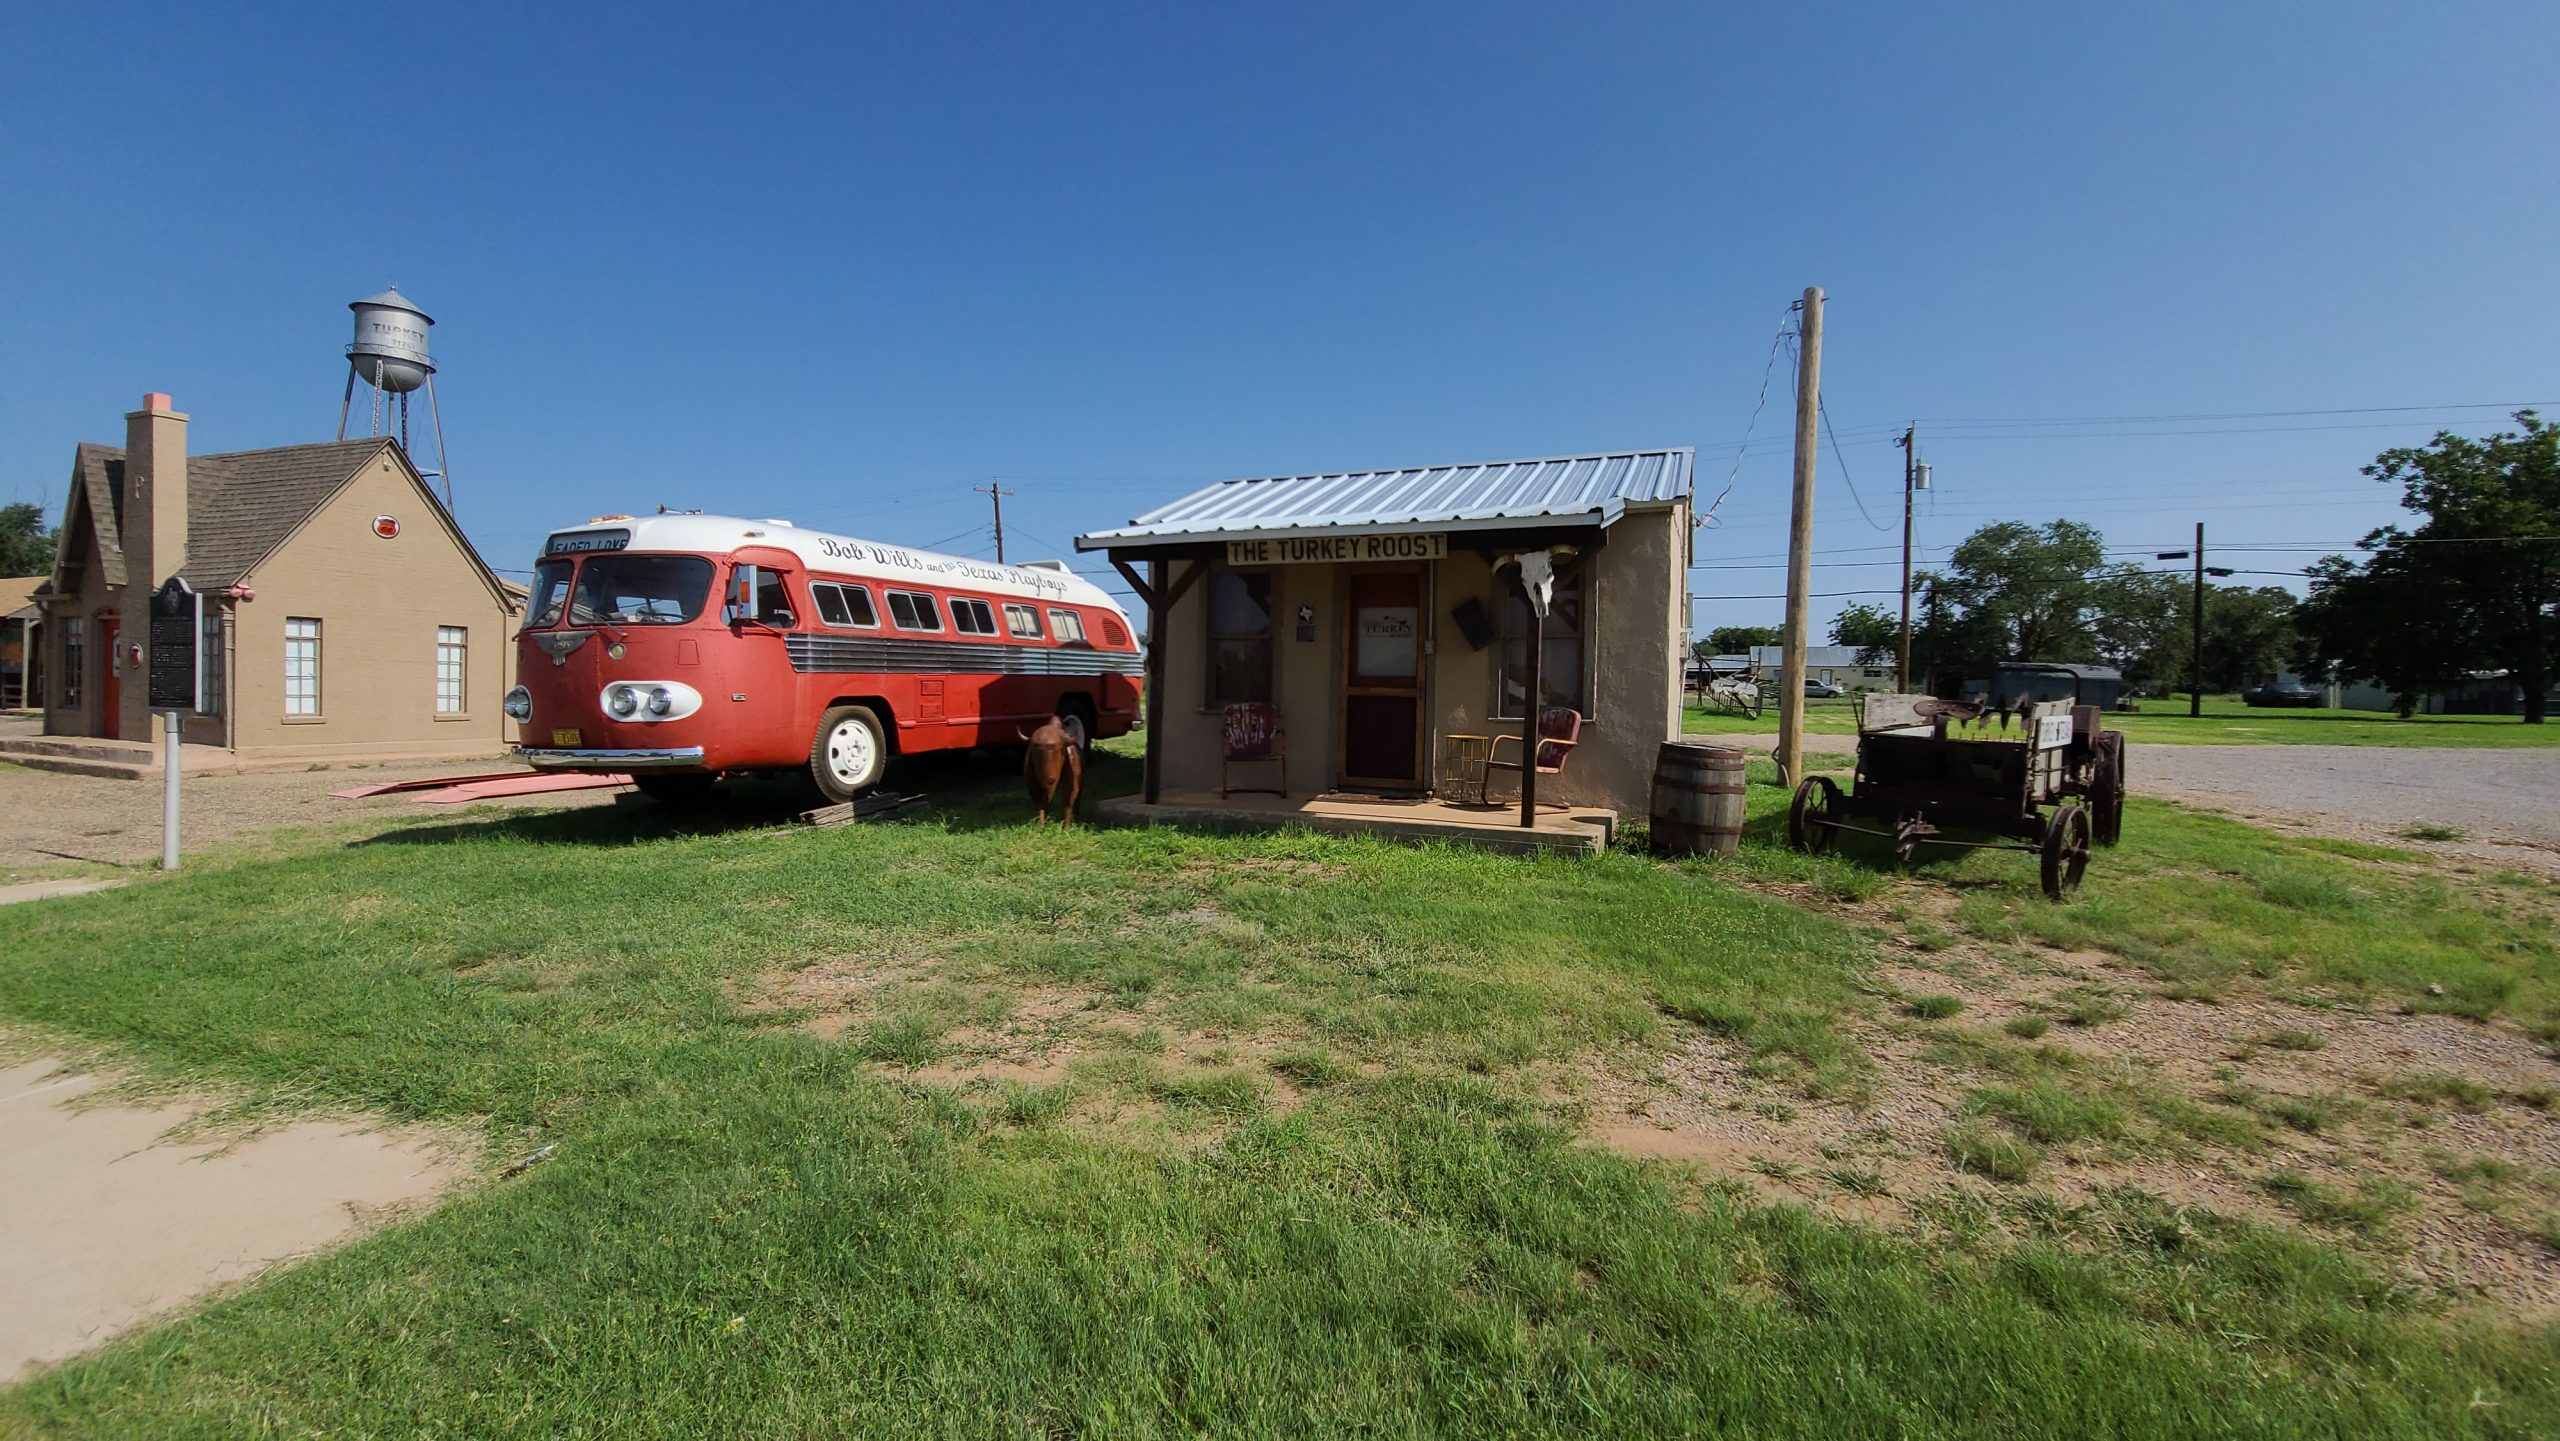 Bob Wills Tour Bus and The Turkey Roost